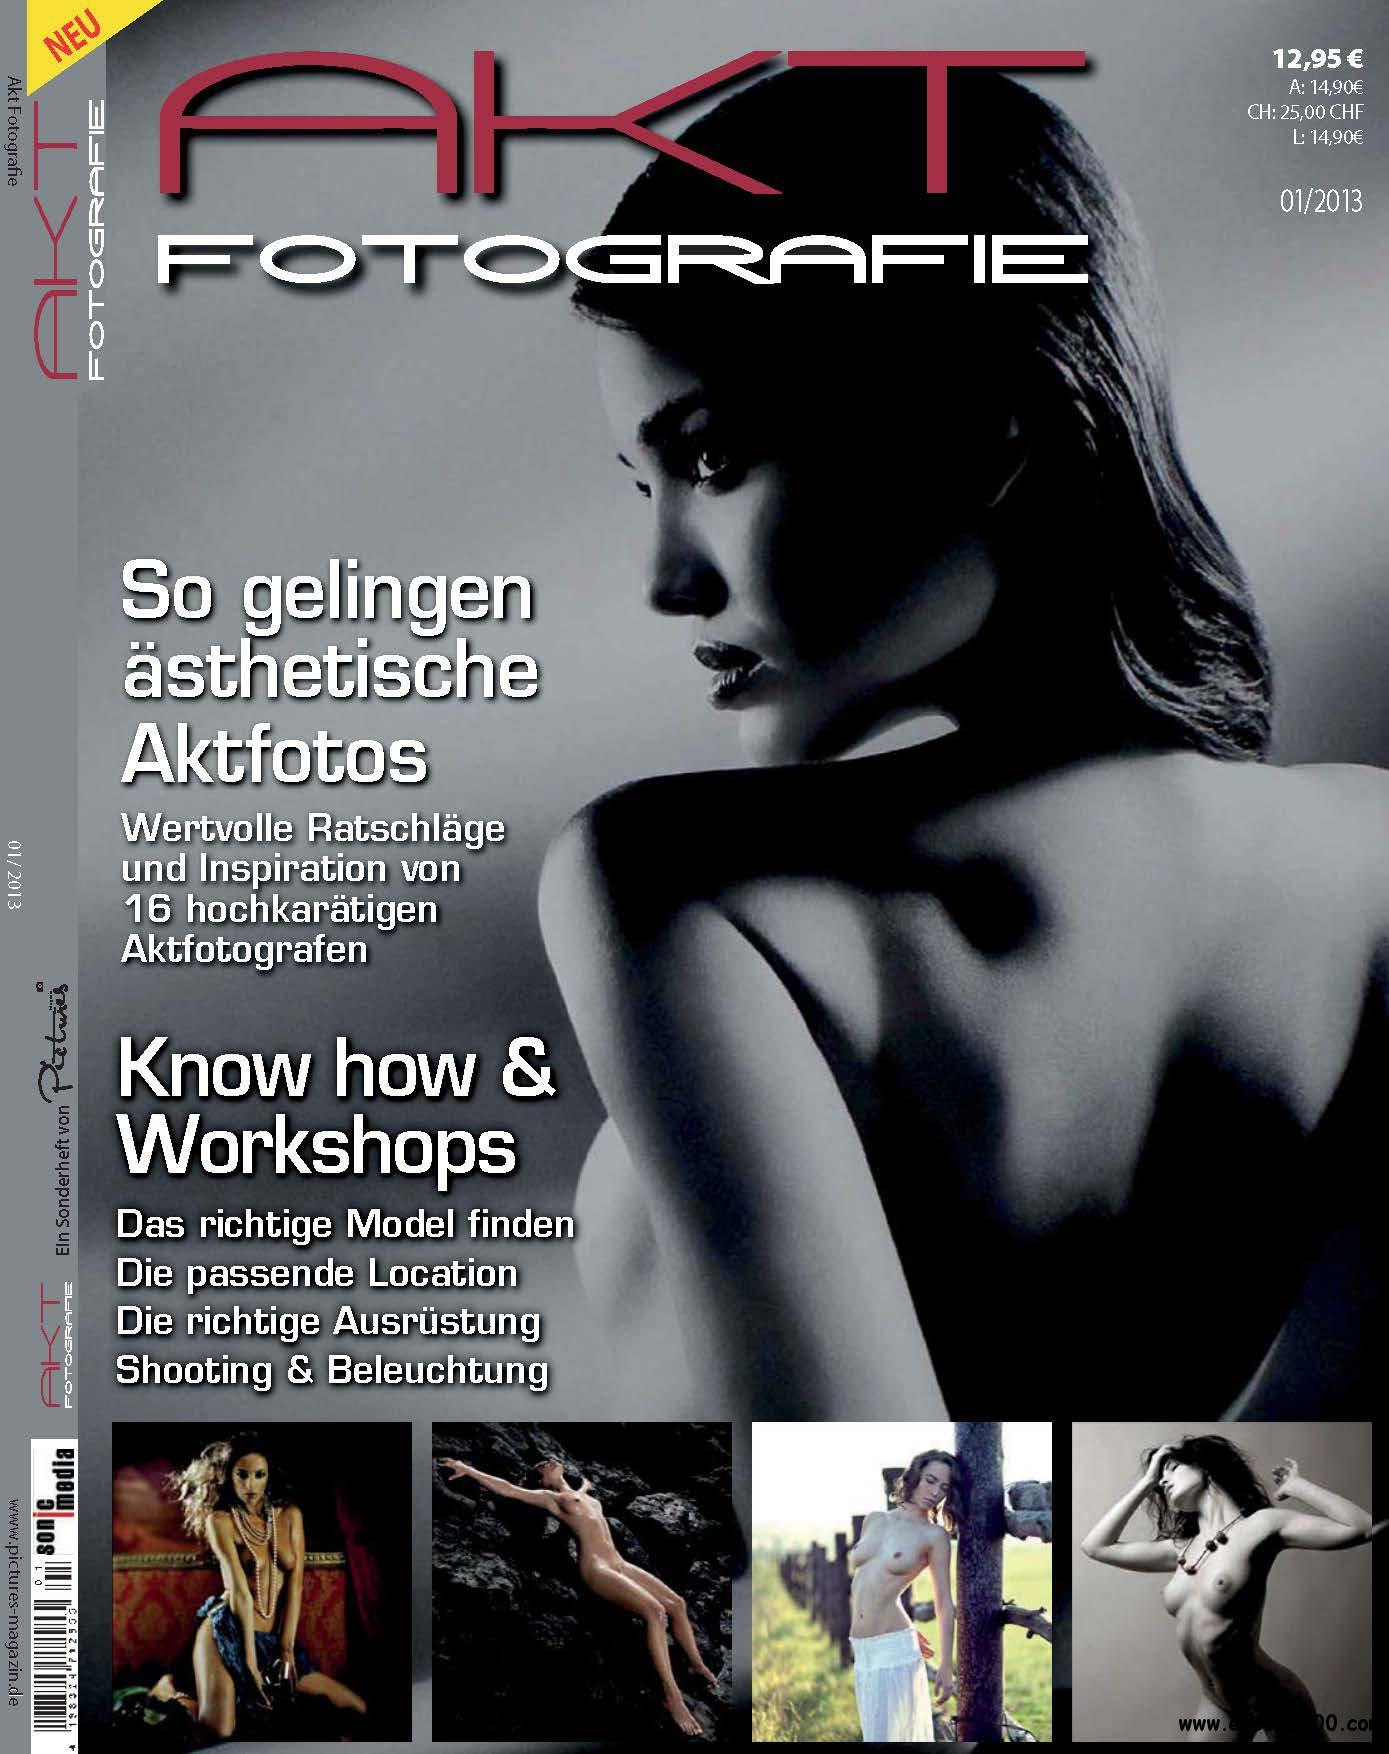 Pictures Magazin Sonderheft: Aktfotografie 01/2013 download dree